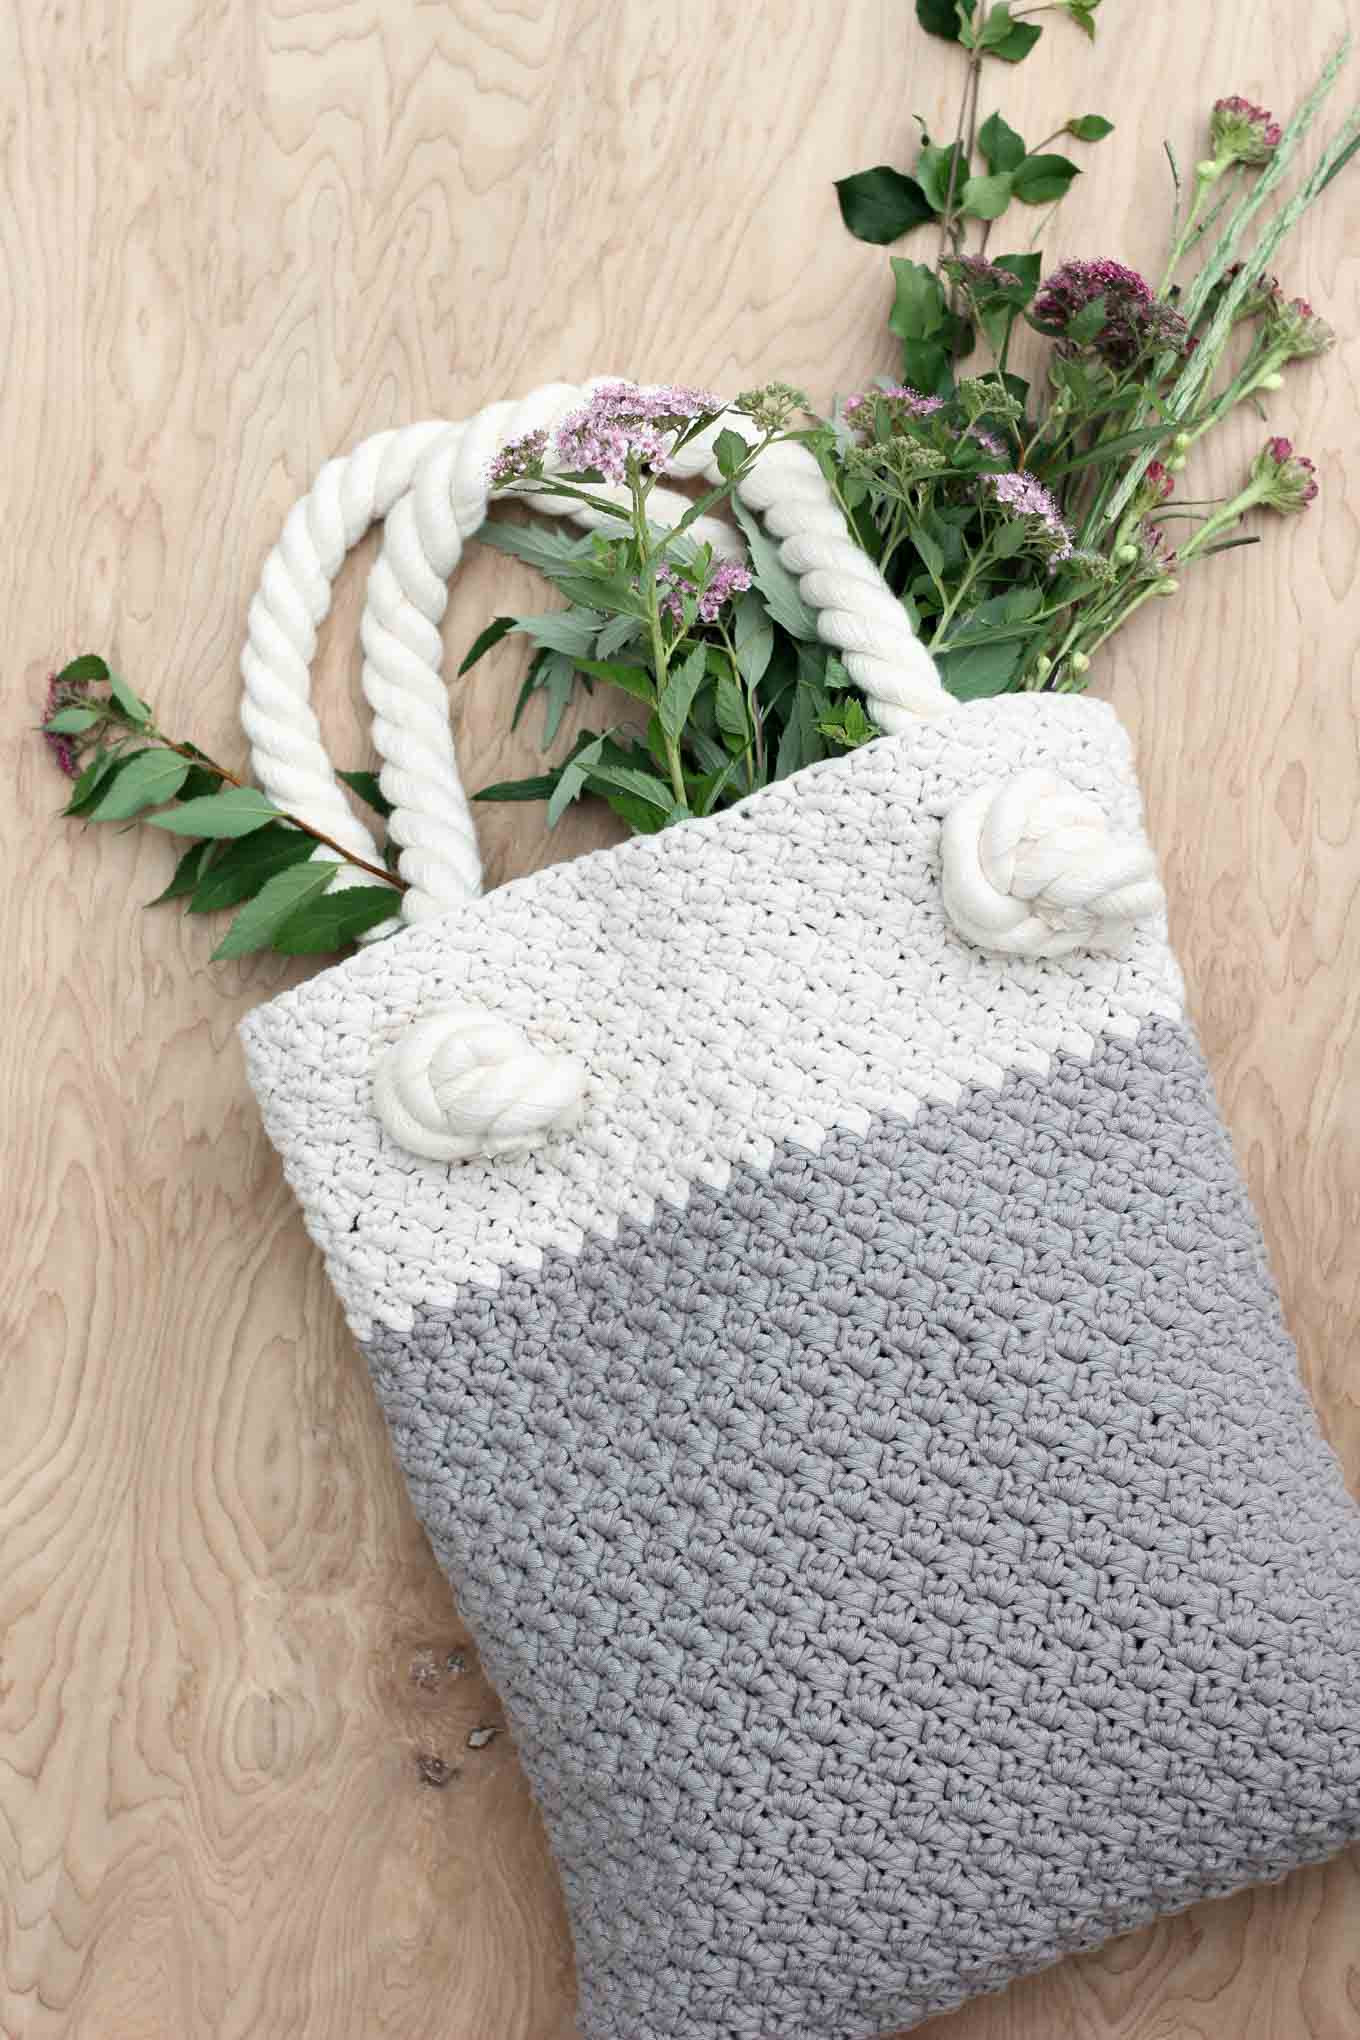 Crochet Purse Awesome Easy Modern Free Crochet Bag Pattern for Beginners Of Top 48 Images Crochet Purse